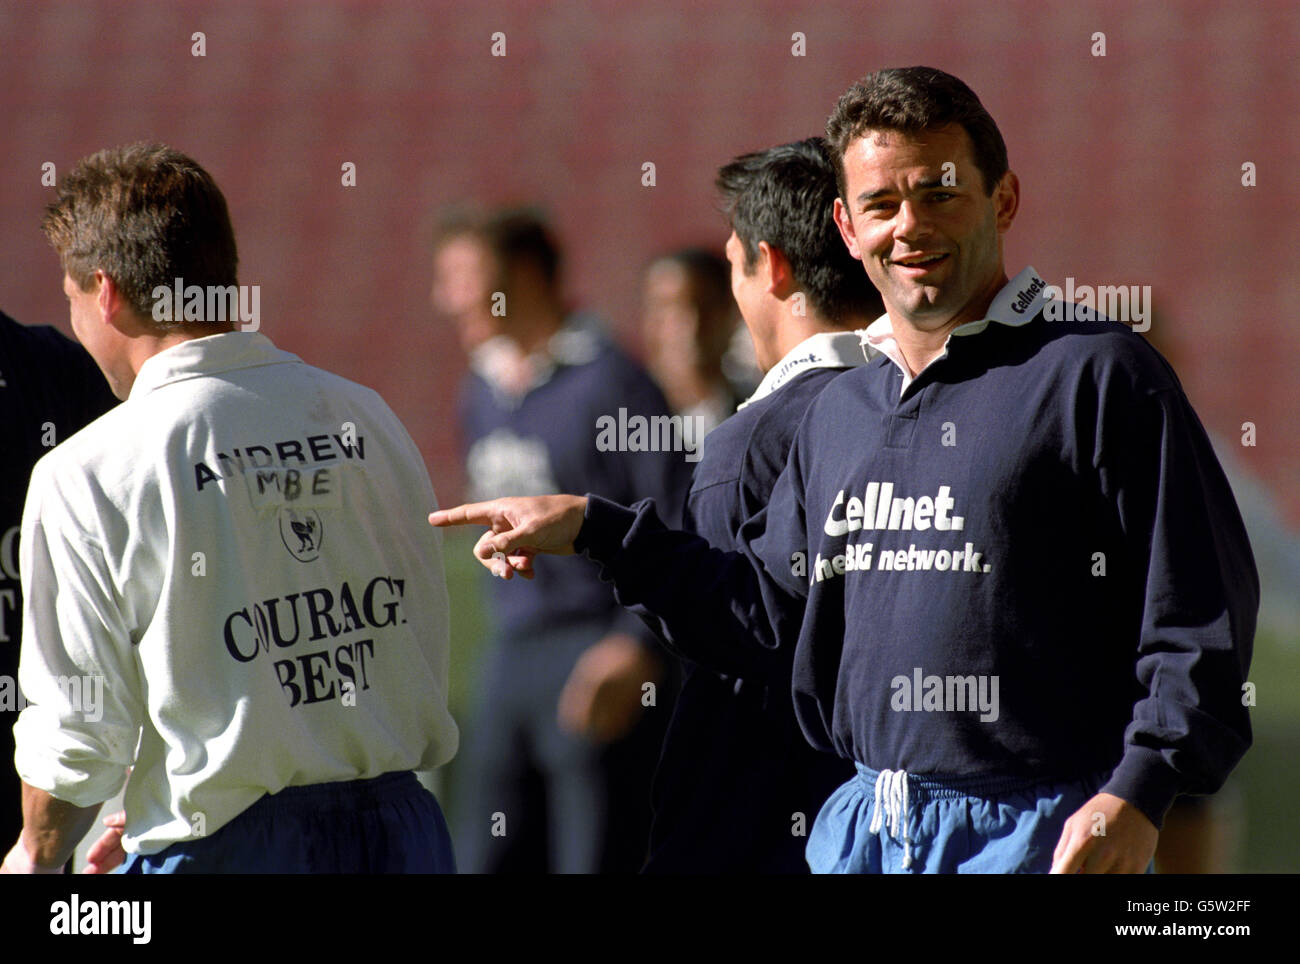 Rugby Union World Cup 1995 -England - Stock Image